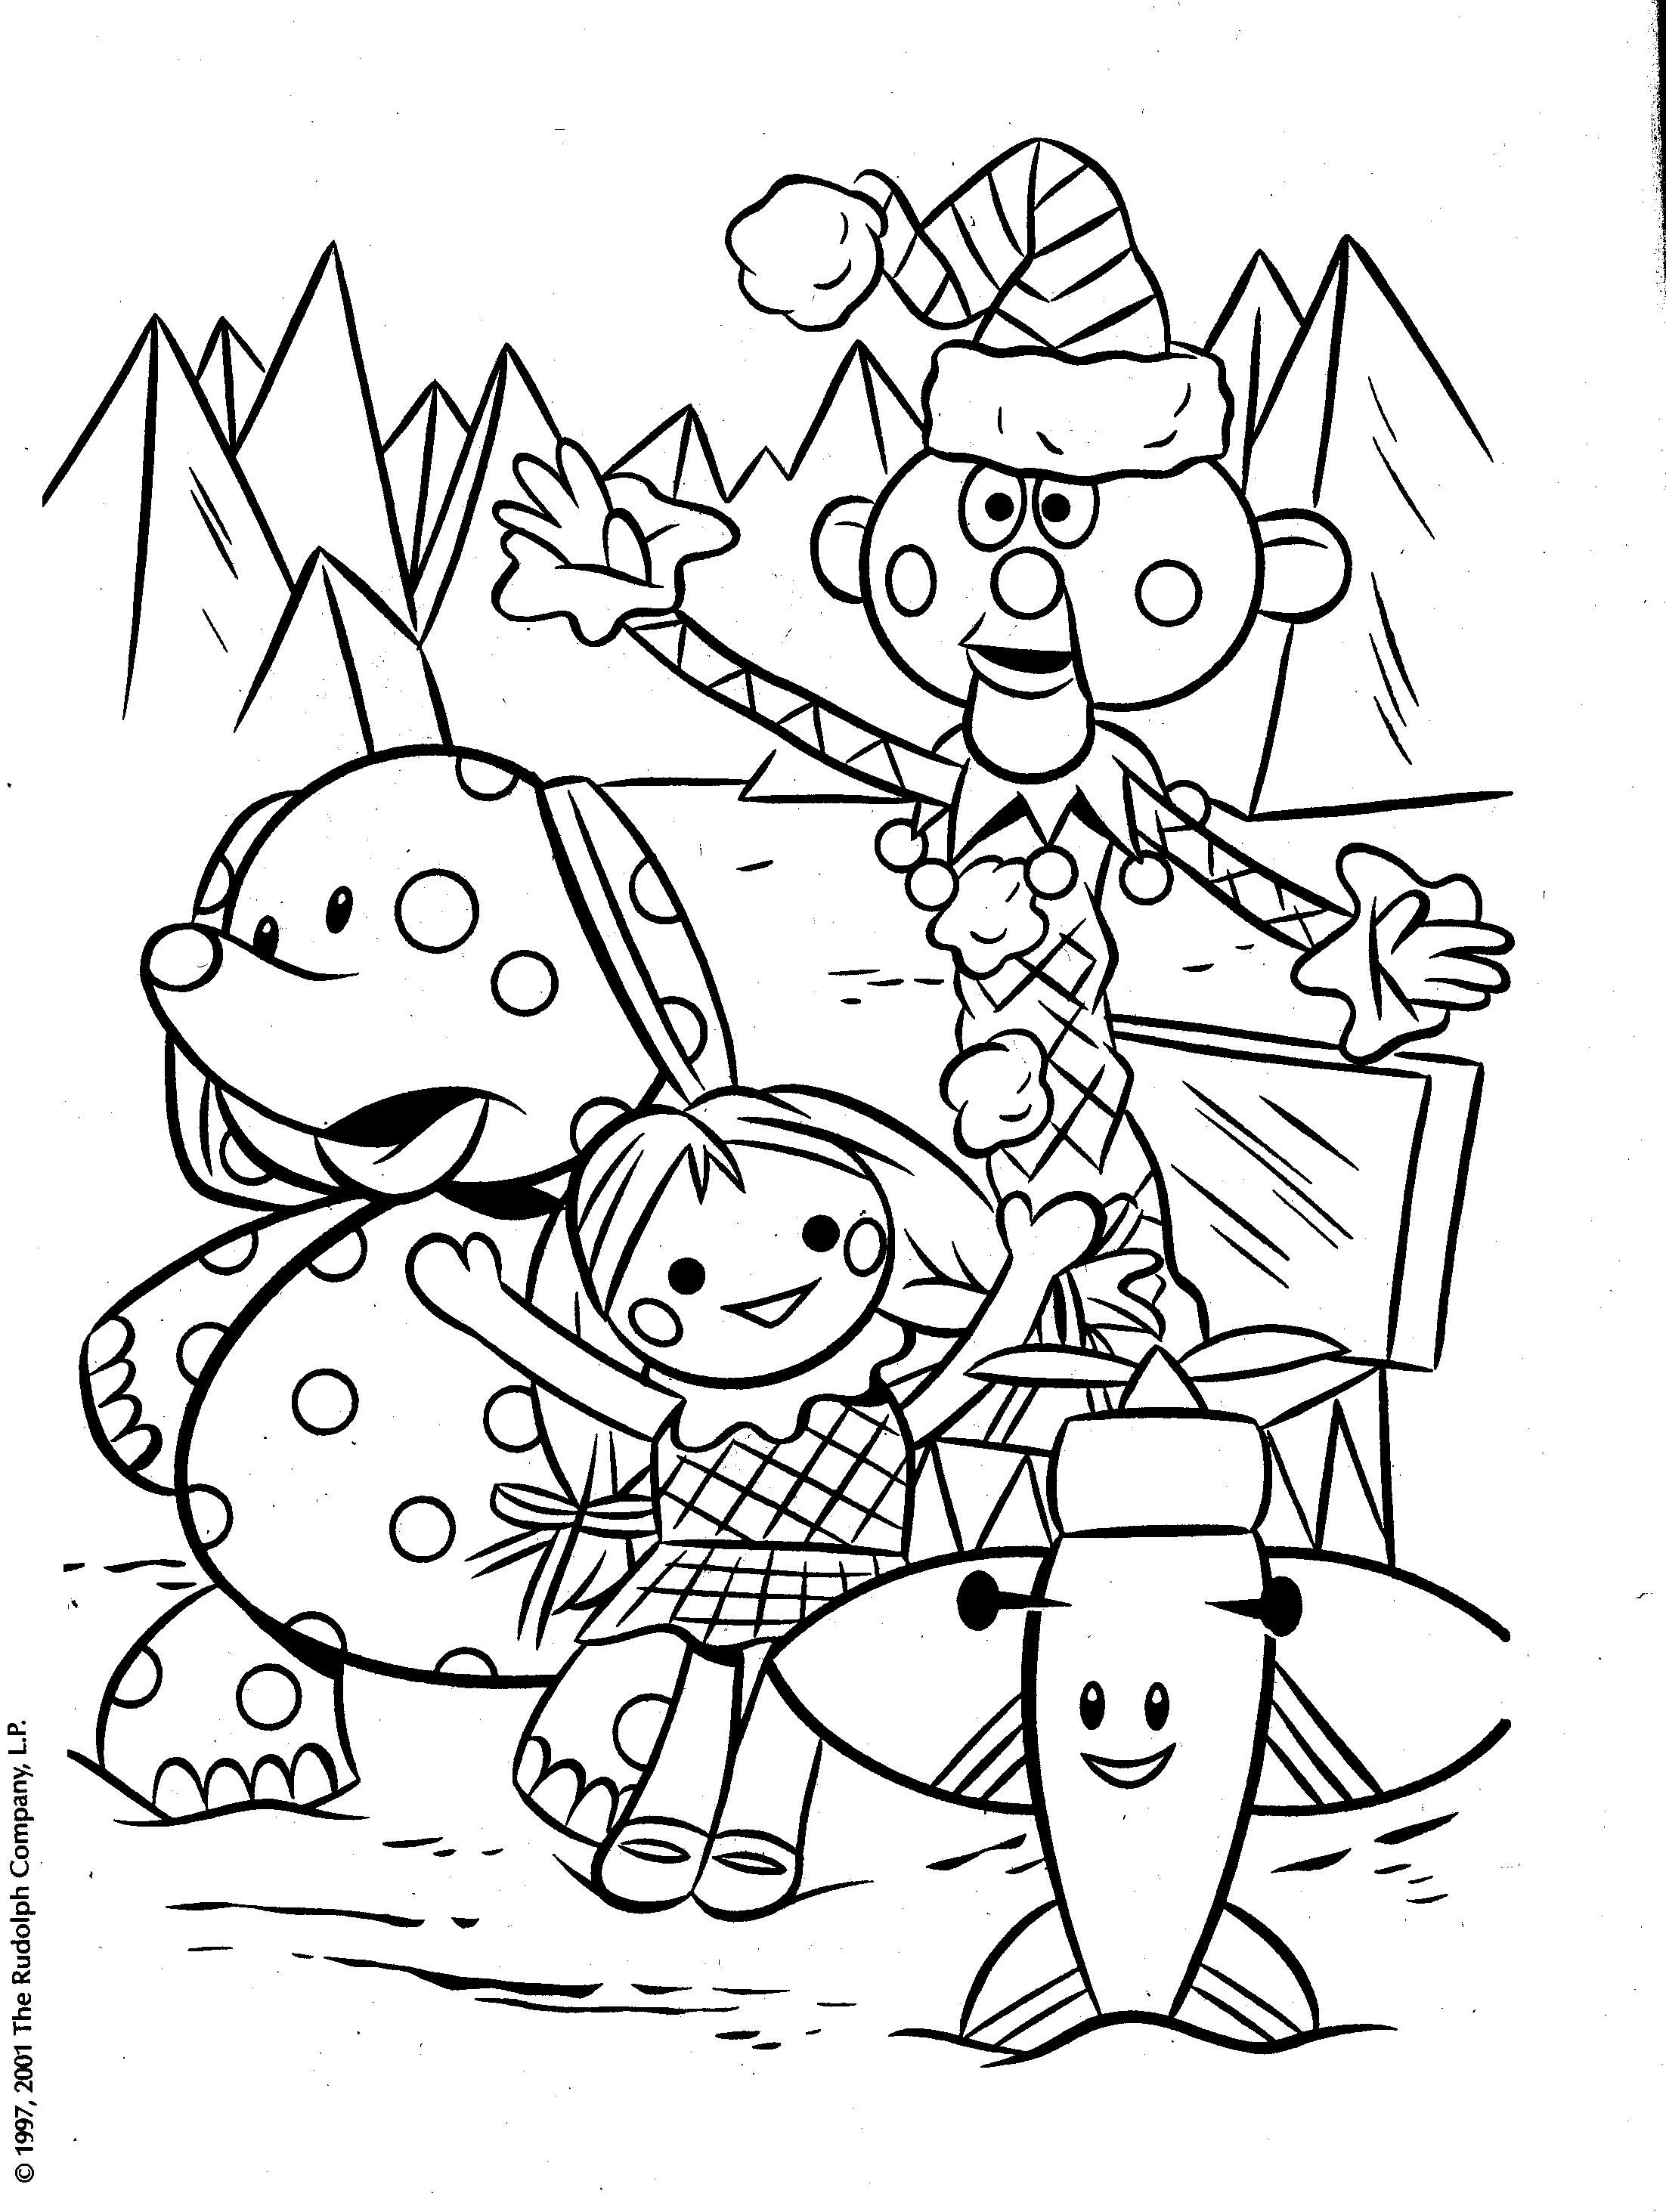 Christmas Rudolph Coloring Pages With Misfit Toys Grammy Picks Pinterest